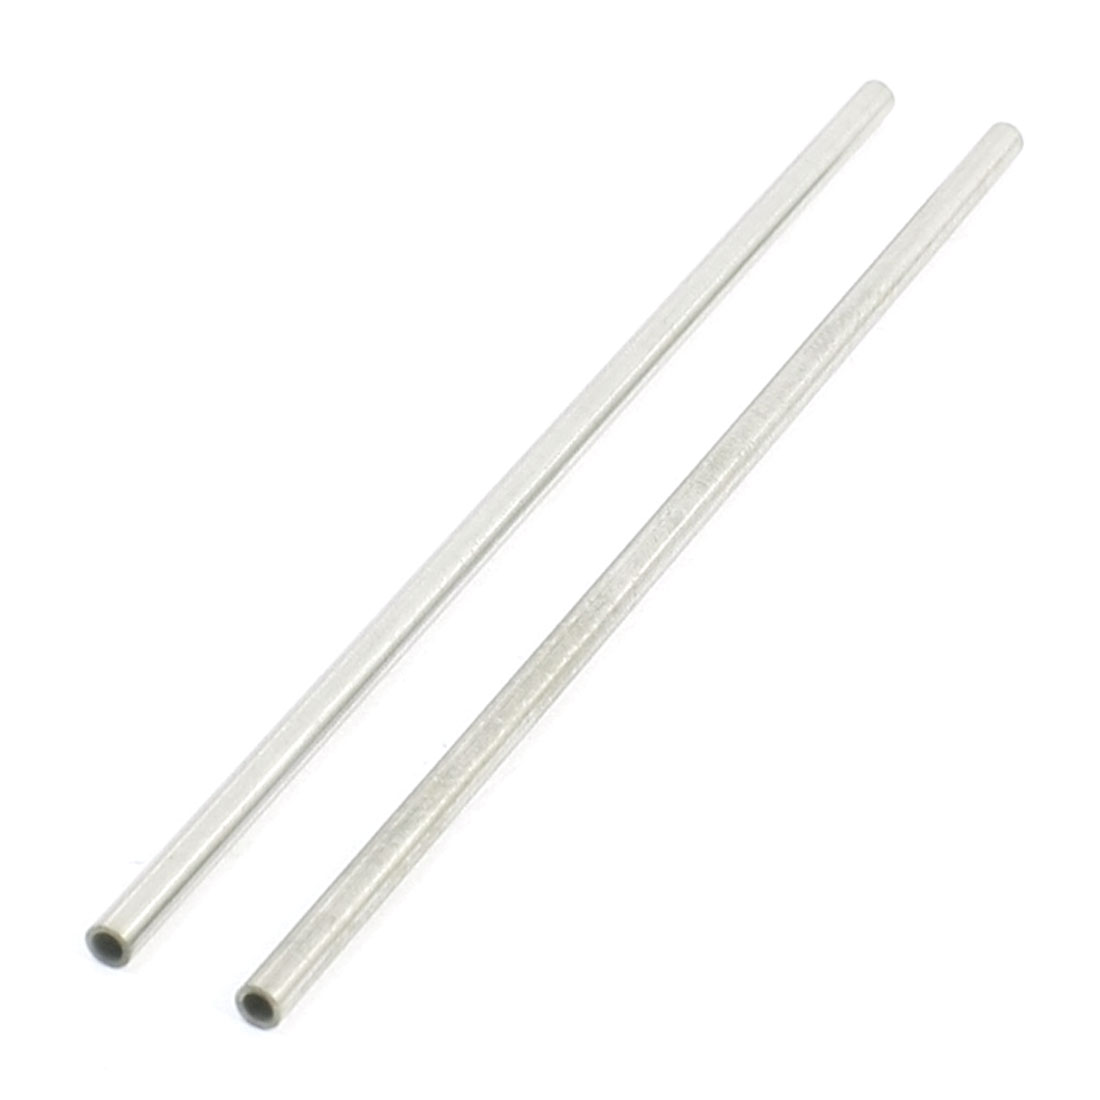 2 Pcs 110mm x 3mm x 2mm Stainless Steel Round Tube Pipe for DIY Car Helicopter Model Toy